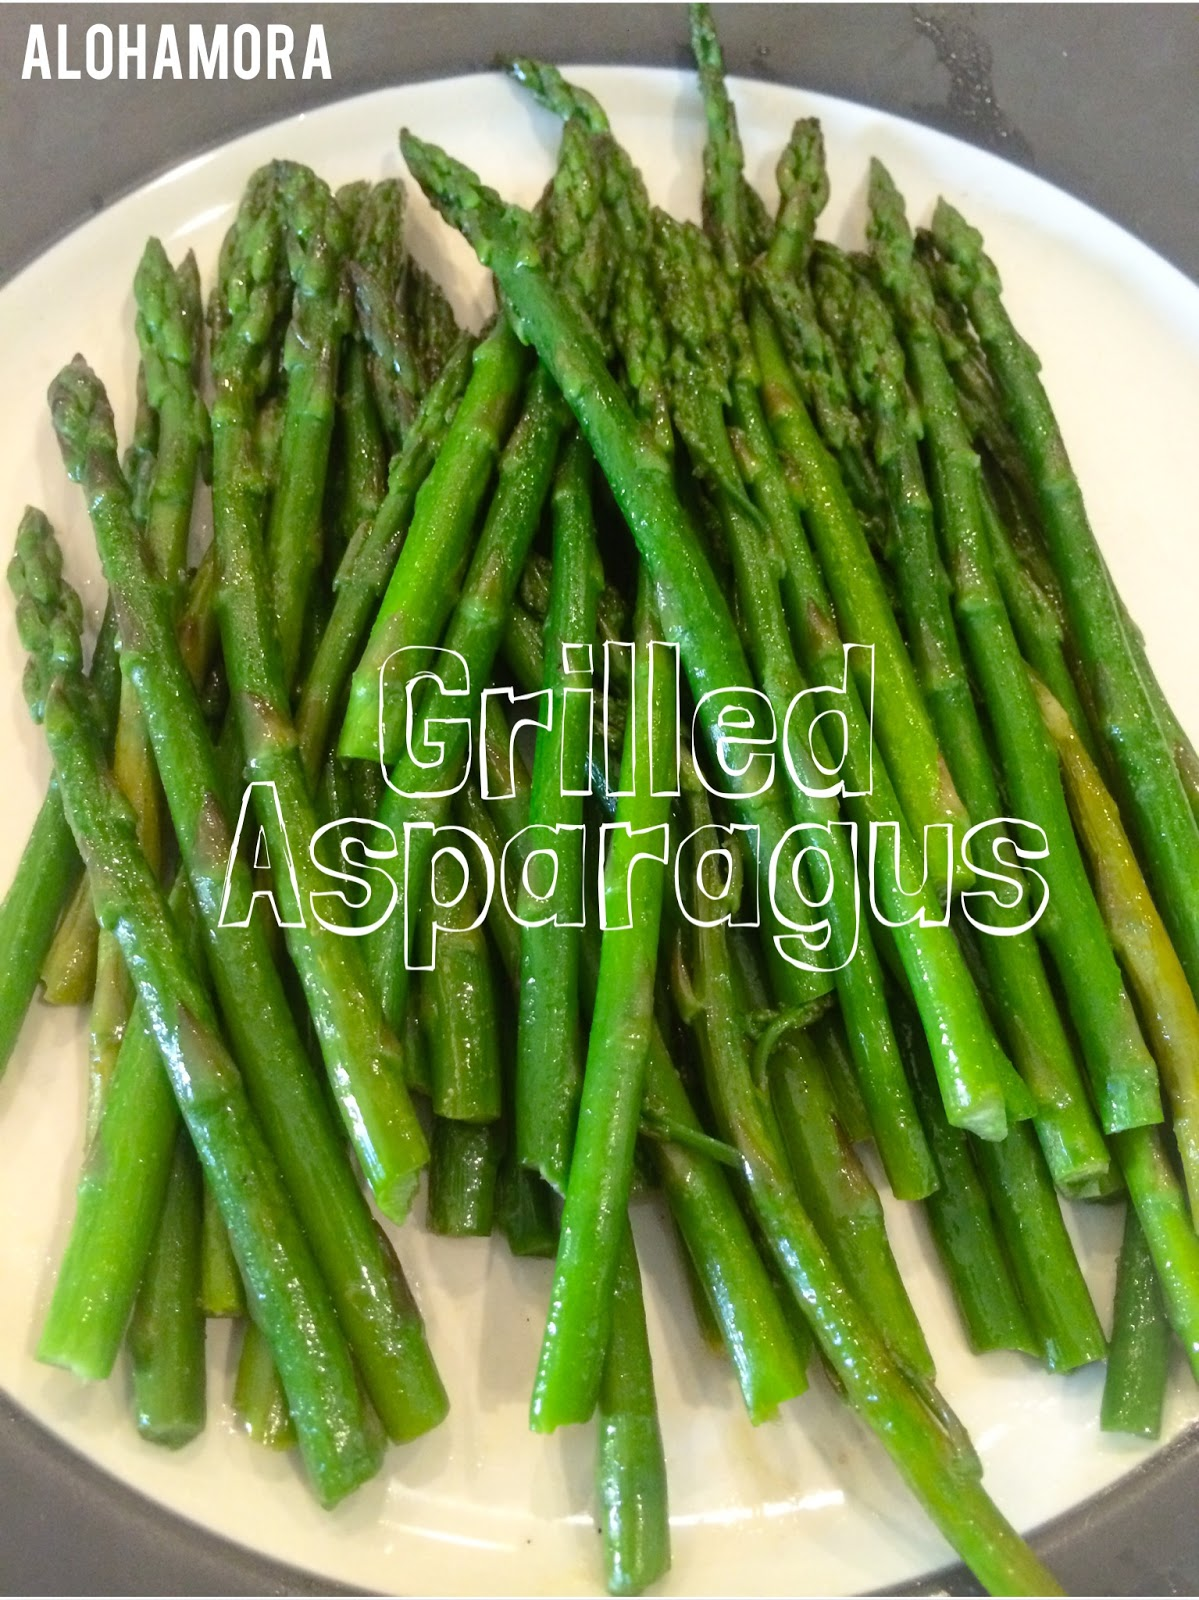 Recipe and steps to easily grill asparagus for a healthy vegetable side dish that is fast to make and uses only aluminum foil  so the clean up is a quick..  Alohamora Open a Book http://www.alohamoraopenabook.blogspot.com/